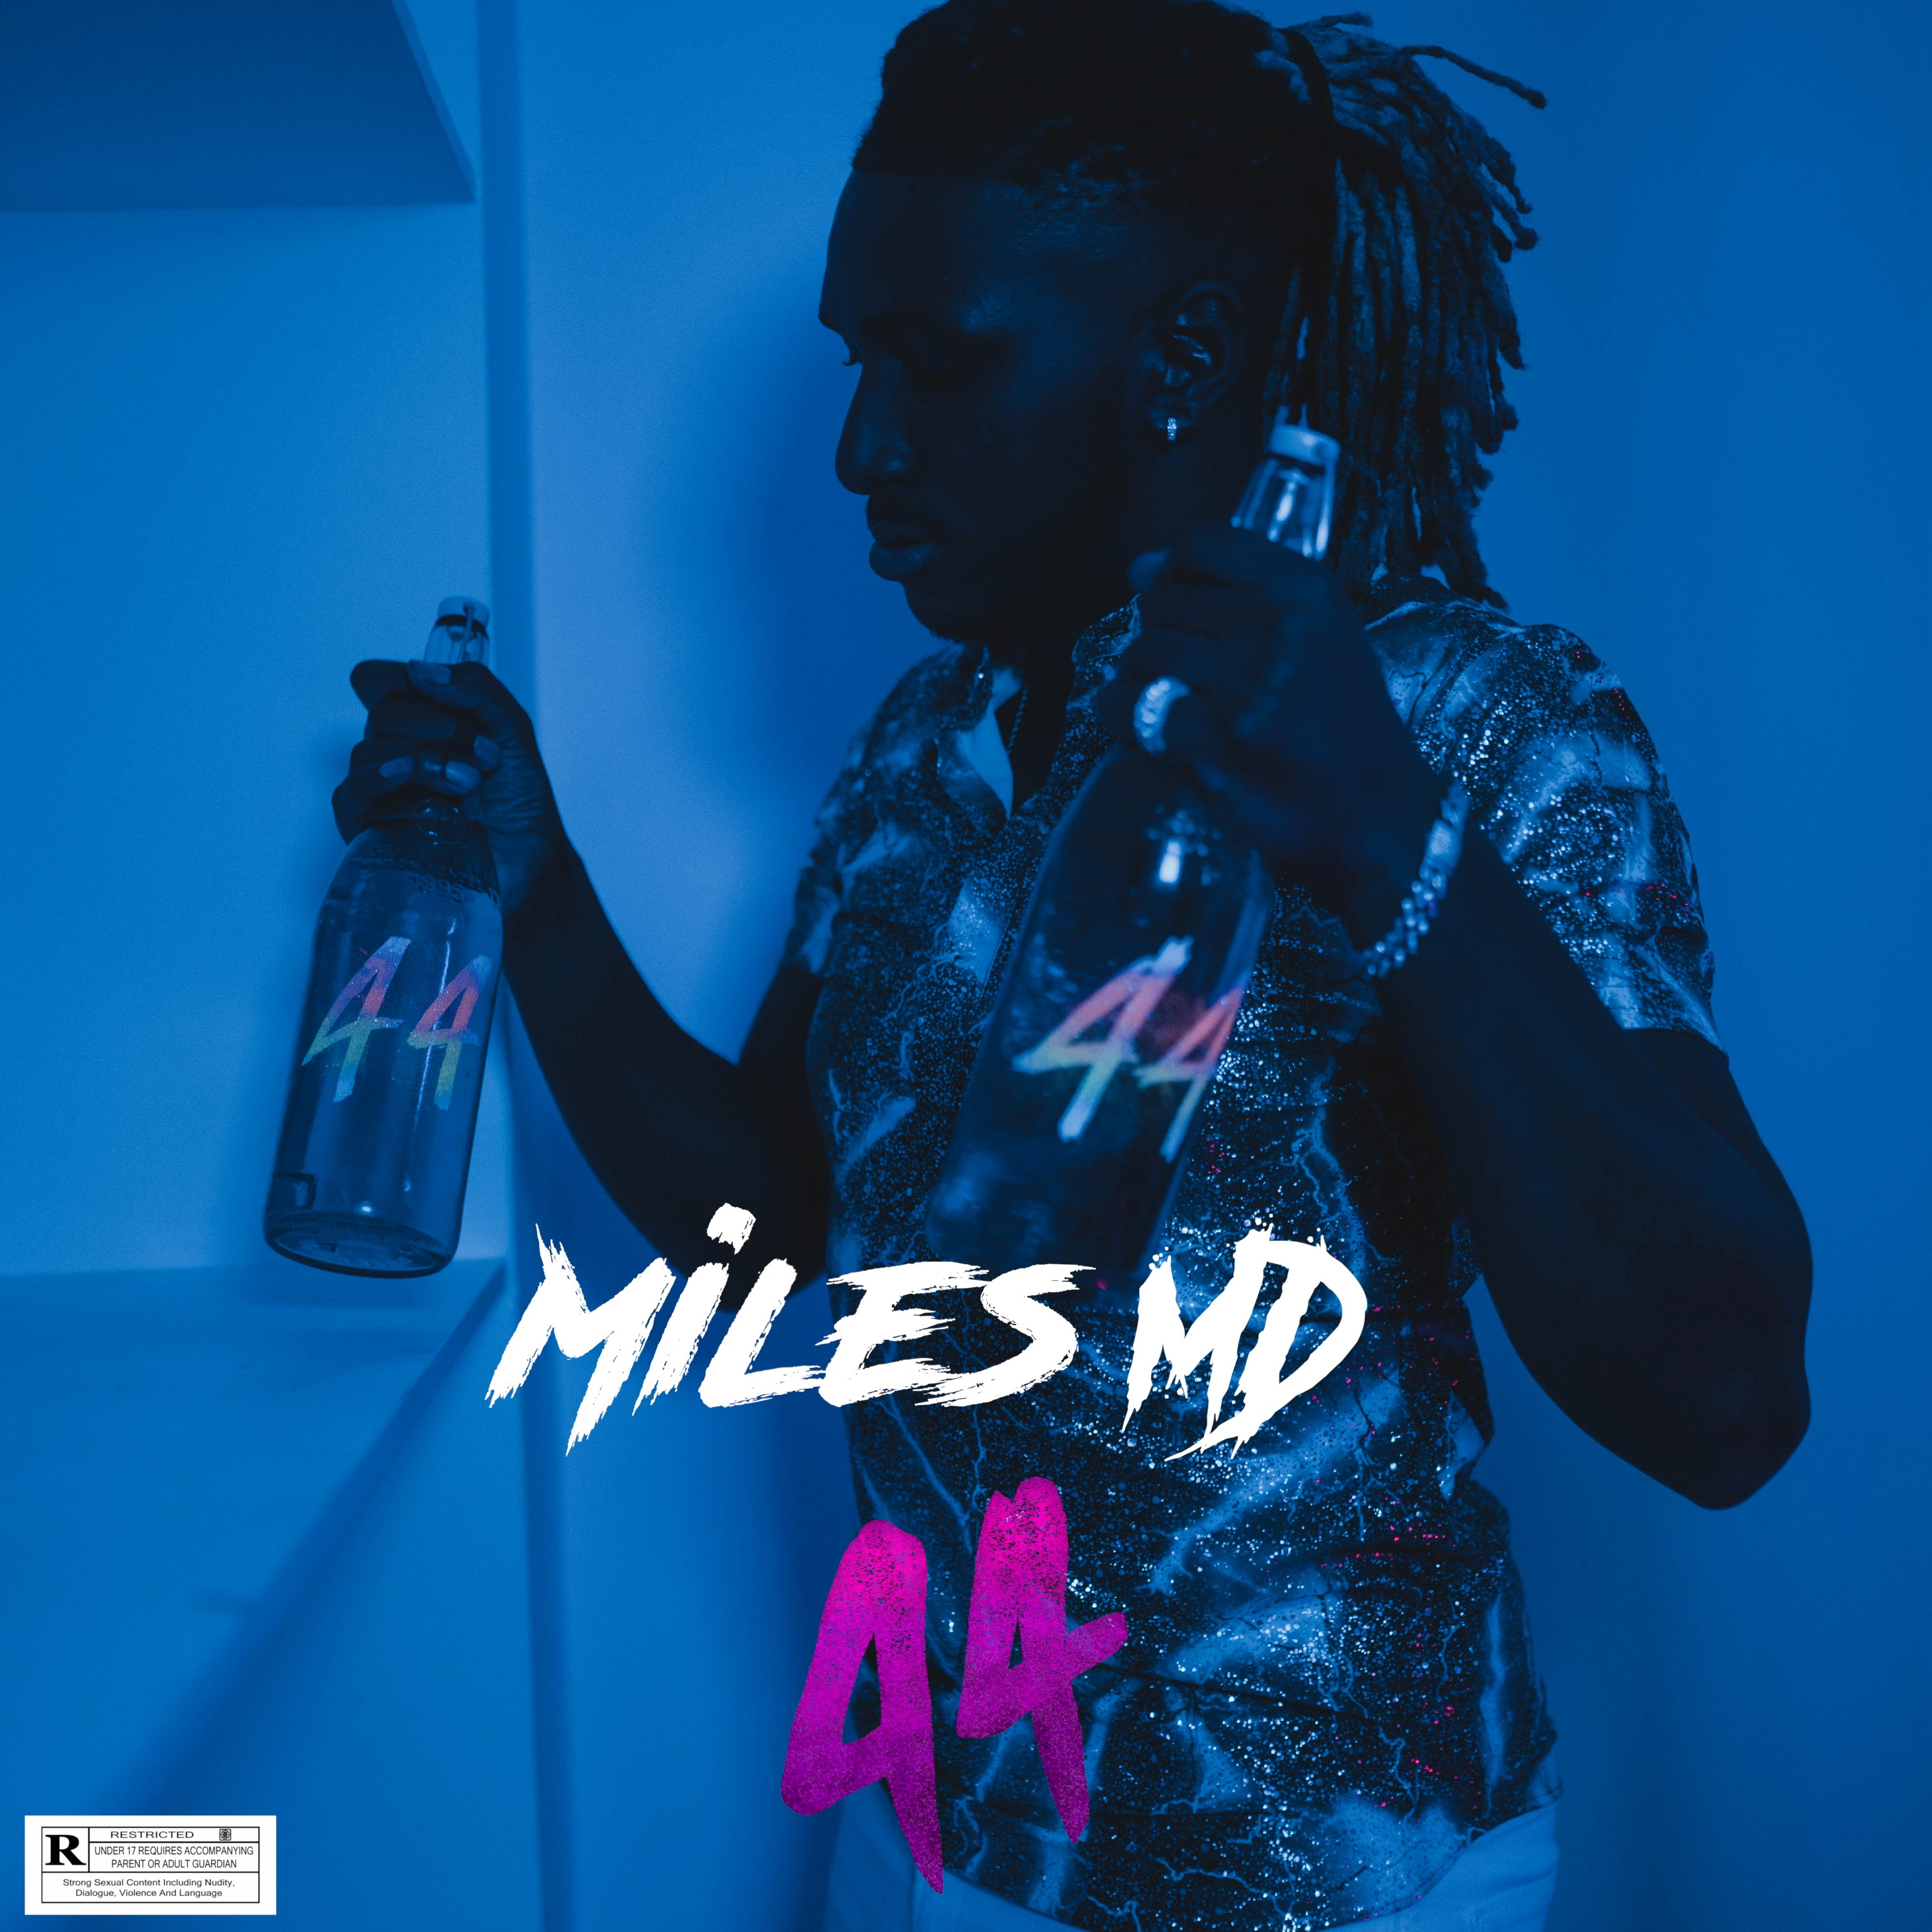 Miles MD - 44 (Clip Officiel)